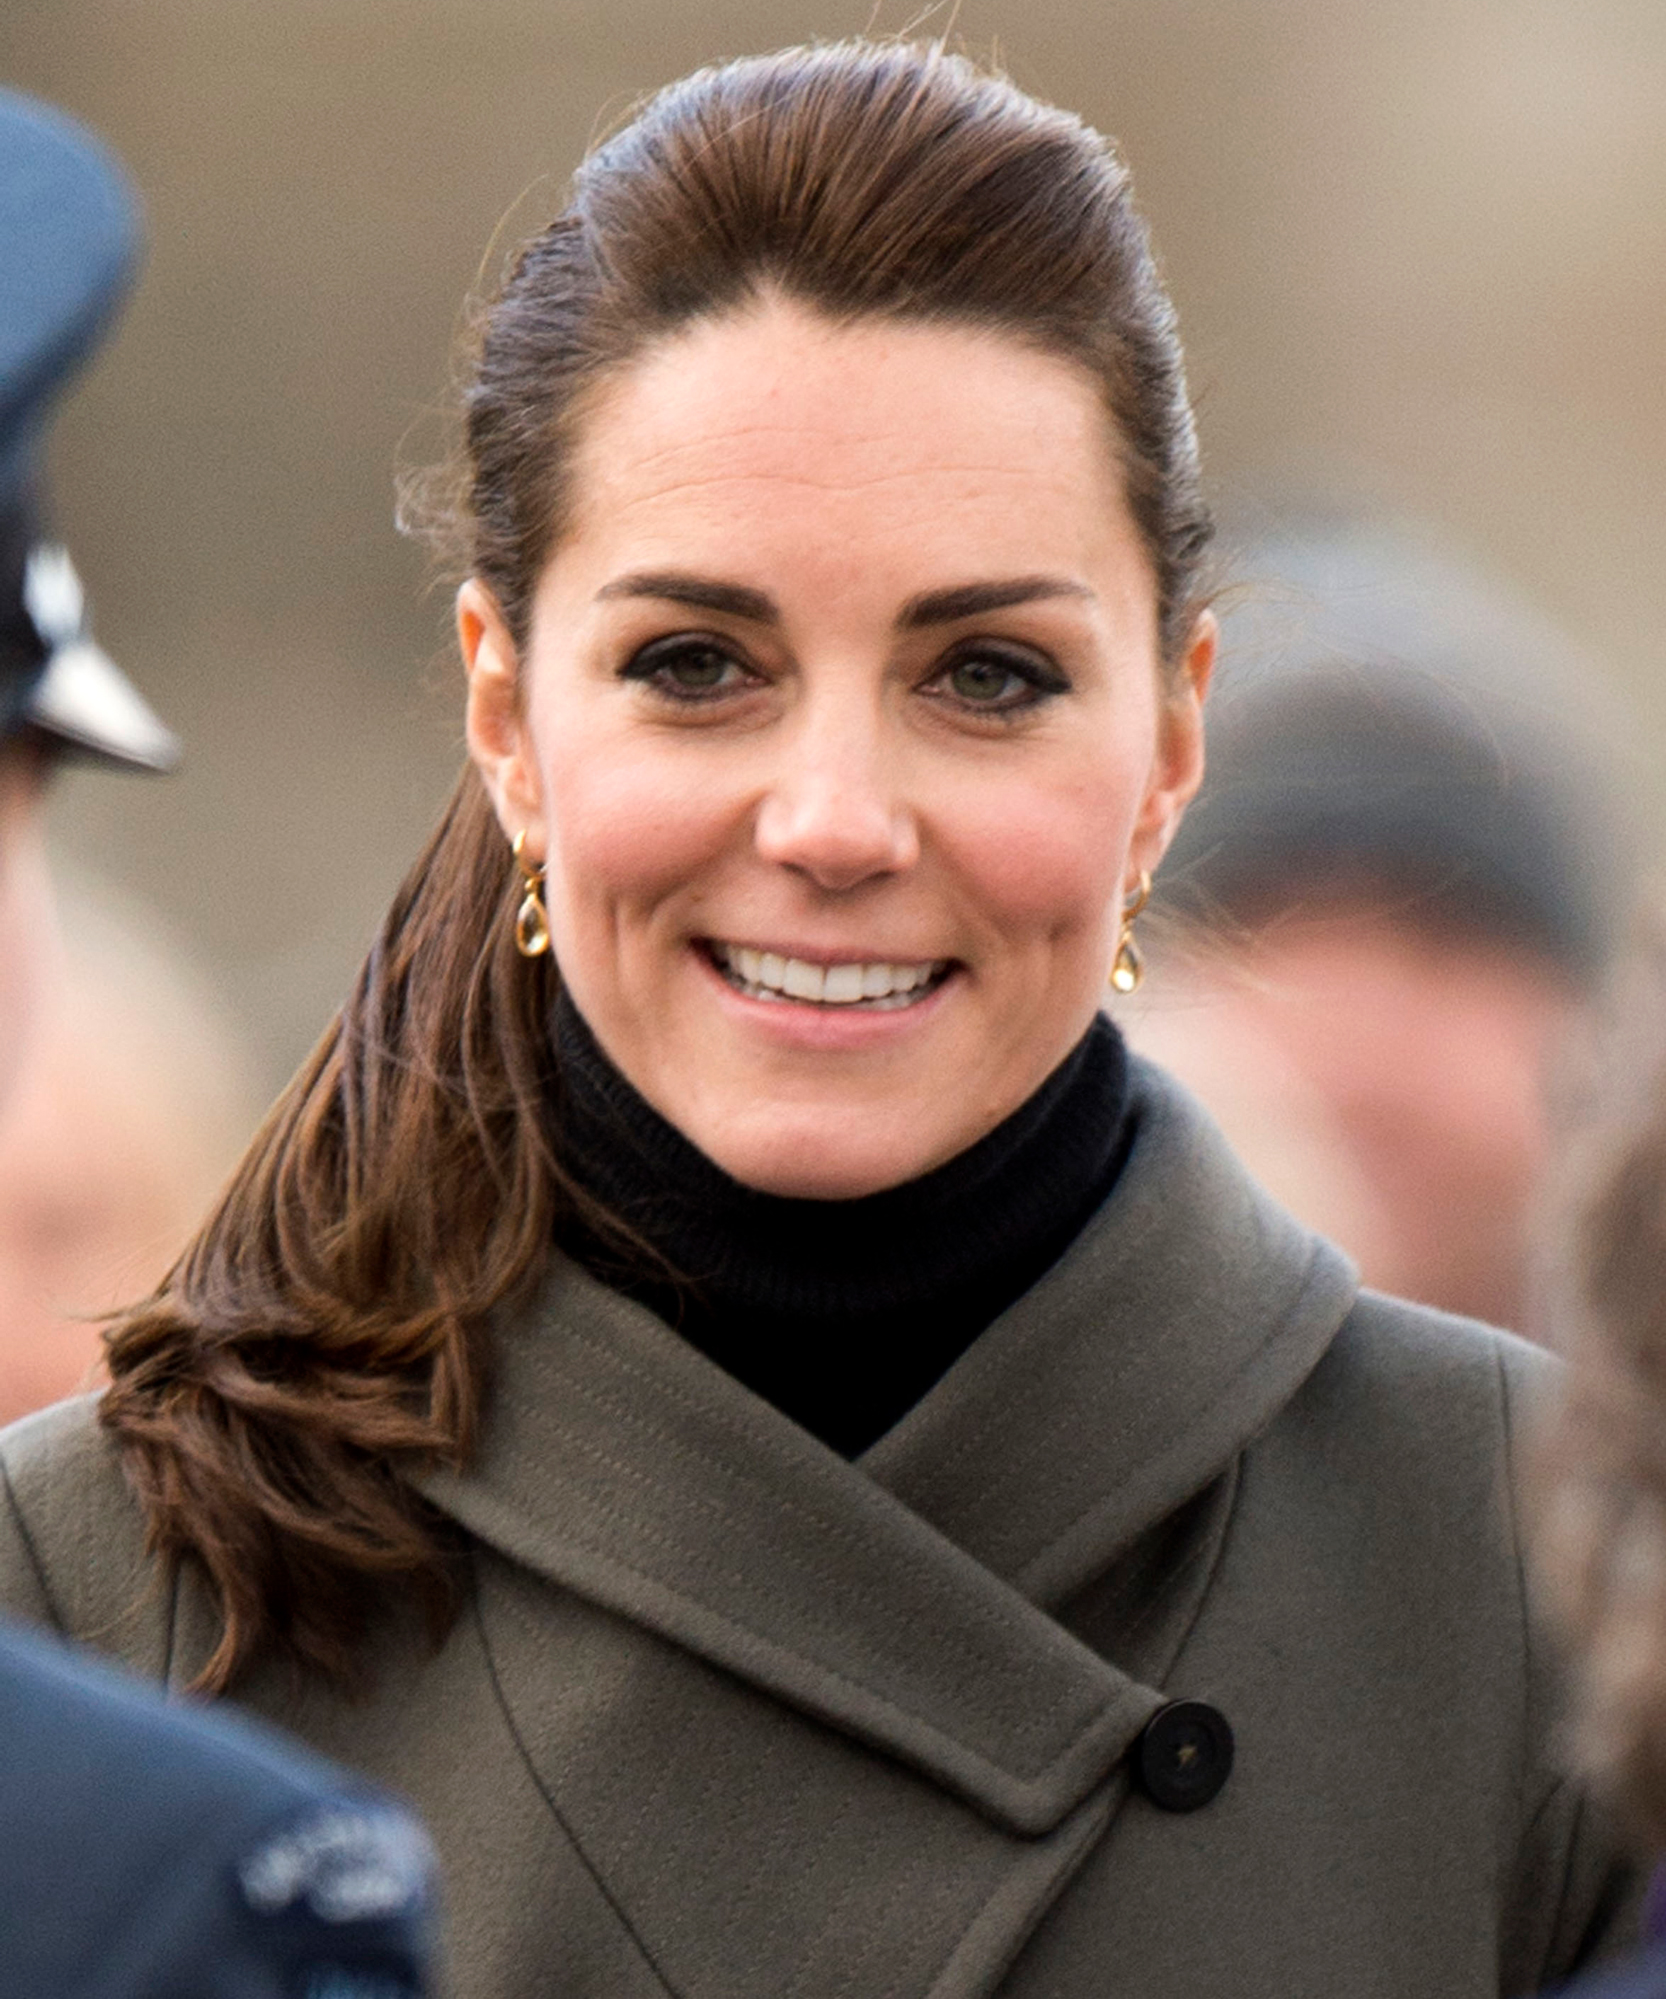 Kate Middleton To Give Her First Interview Since Engagement in 2010